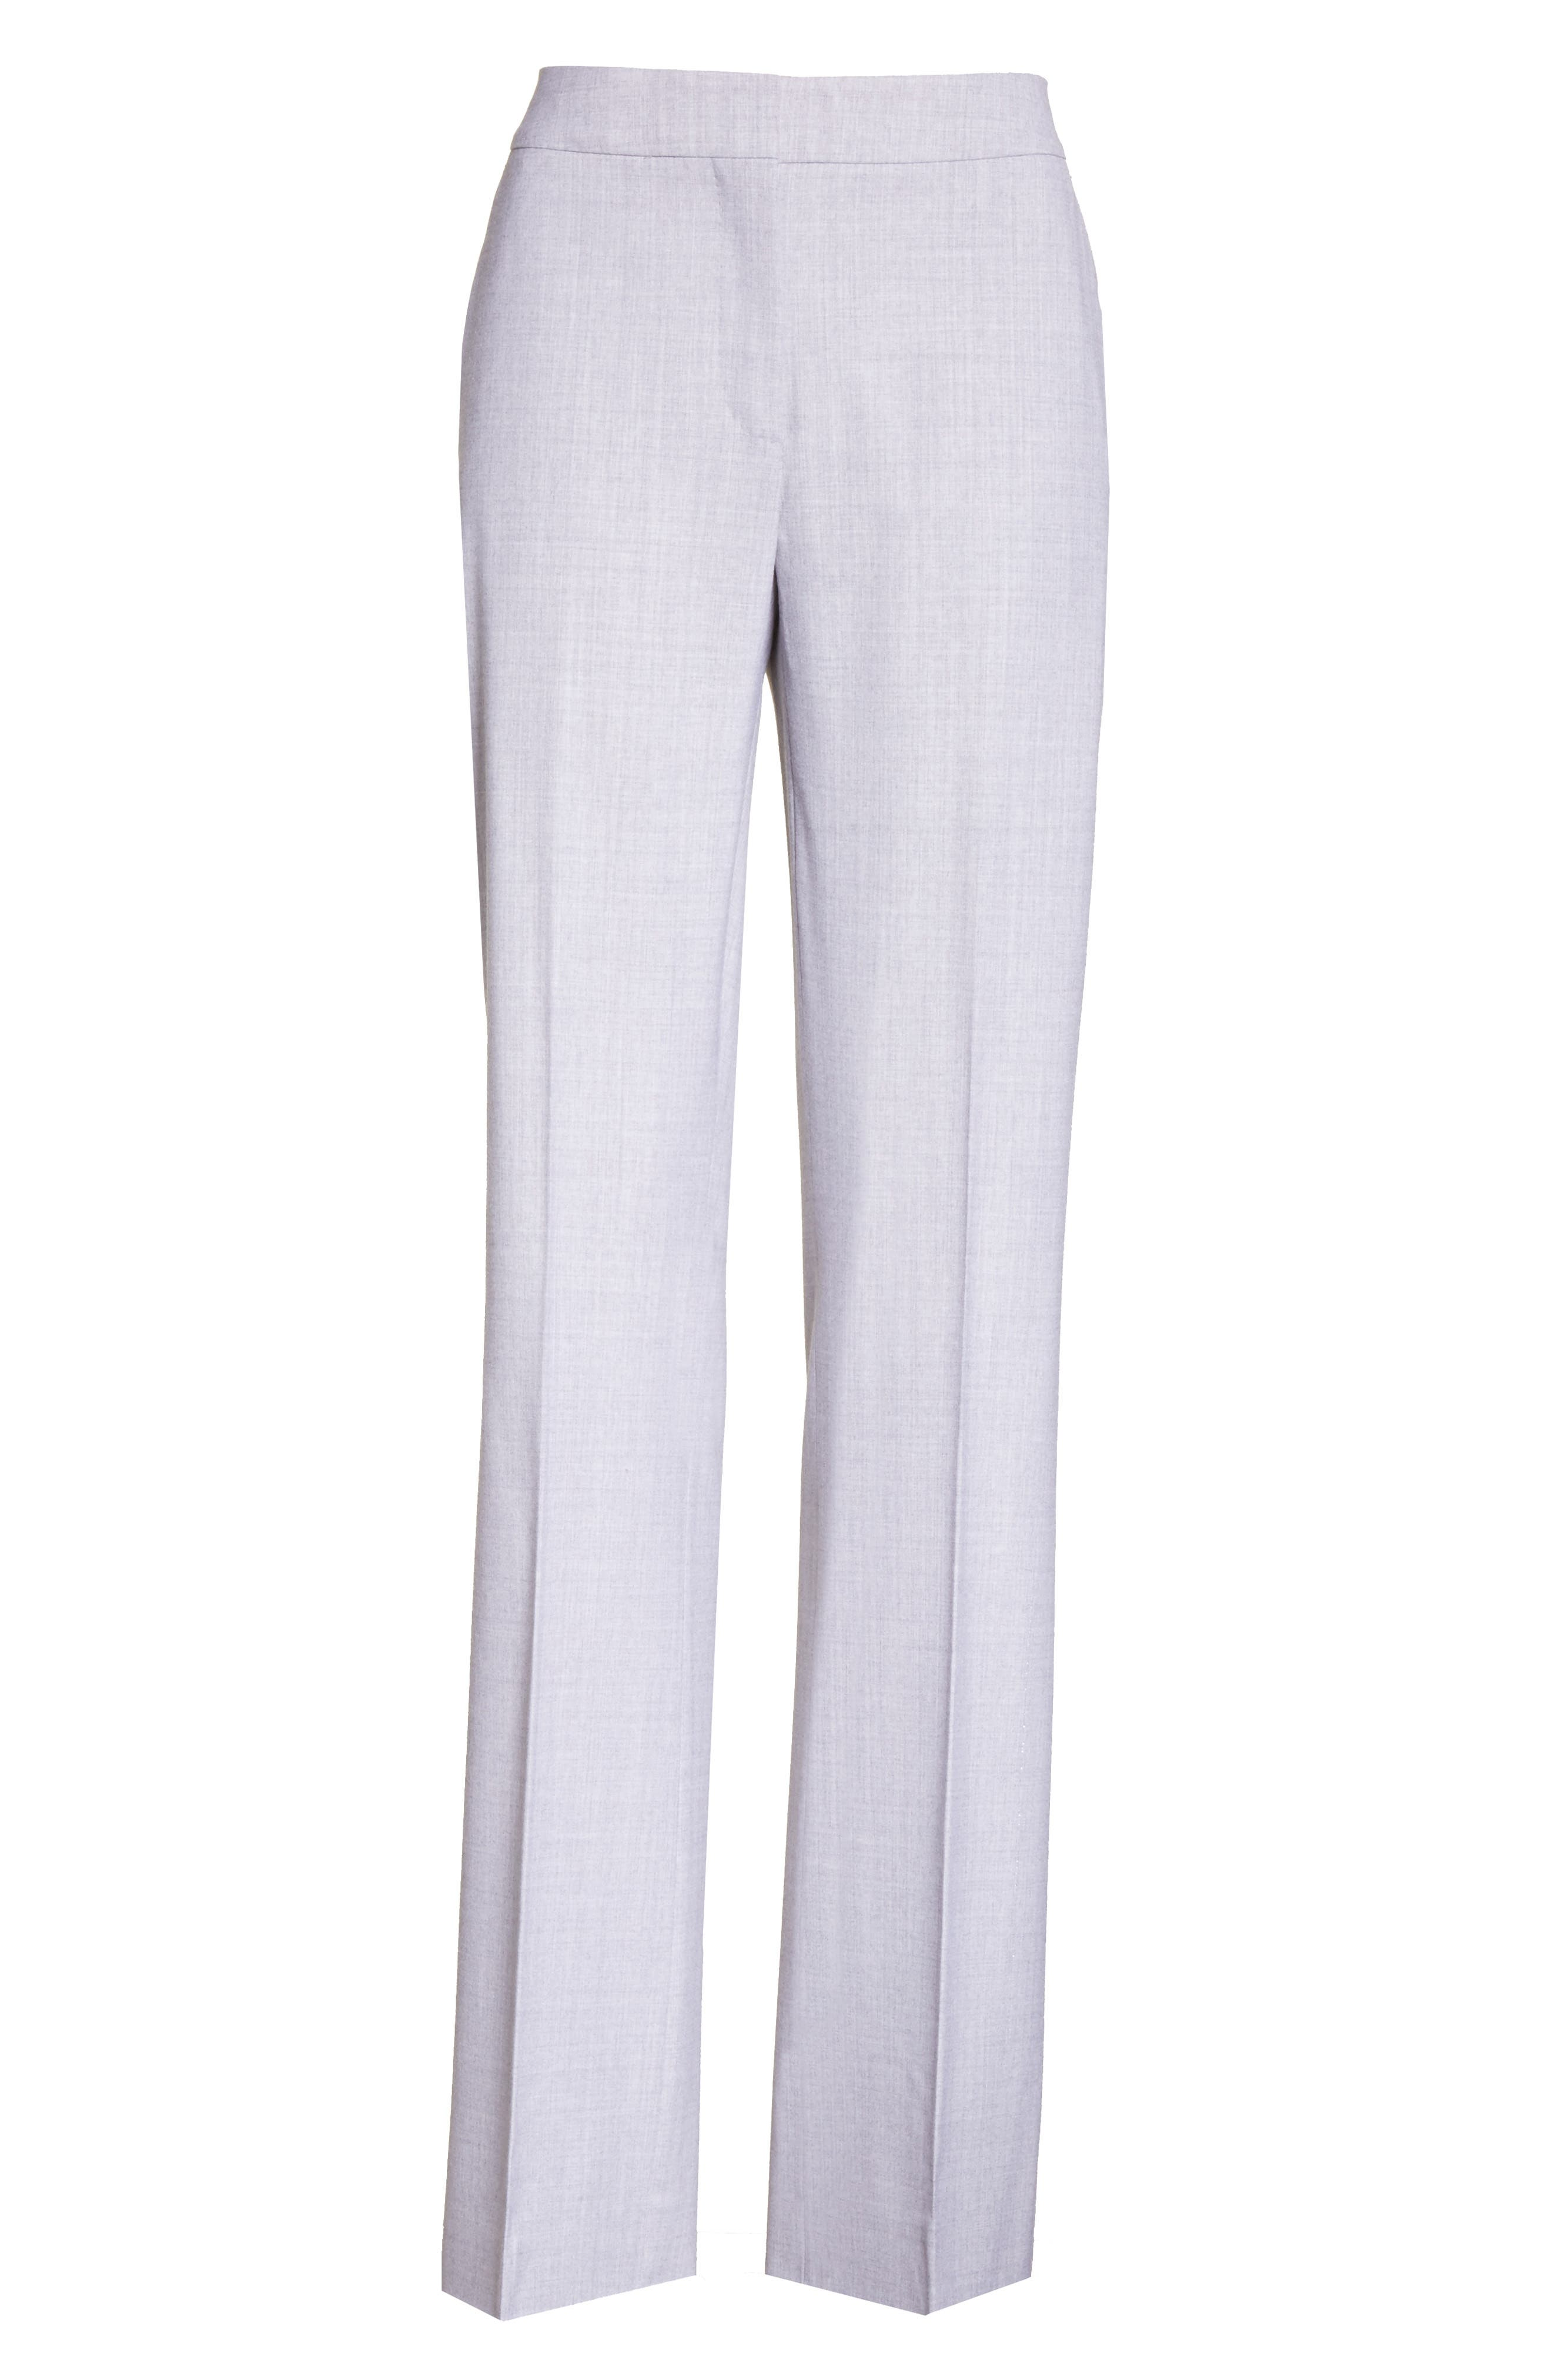 Alessia Stretch Wool Pants,                             Alternate thumbnail 6, color,                             054